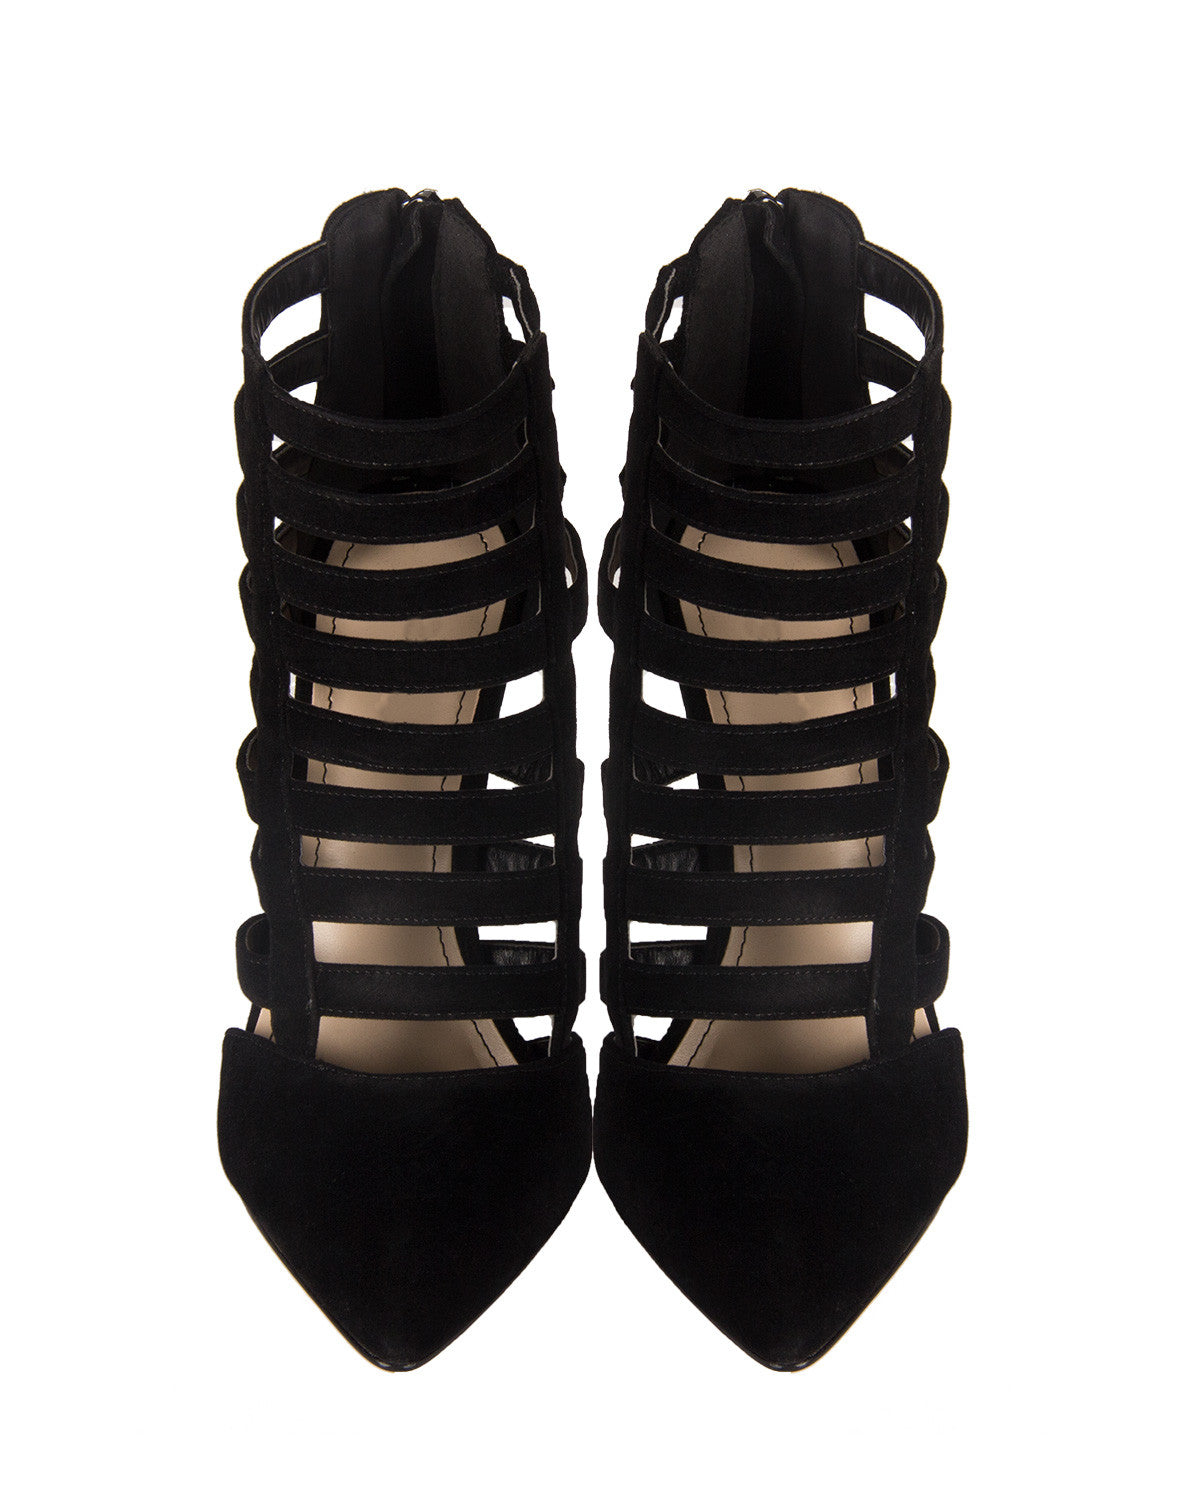 Suede Pointed Strappy Pumps - Bamboo Momentum-82 Black